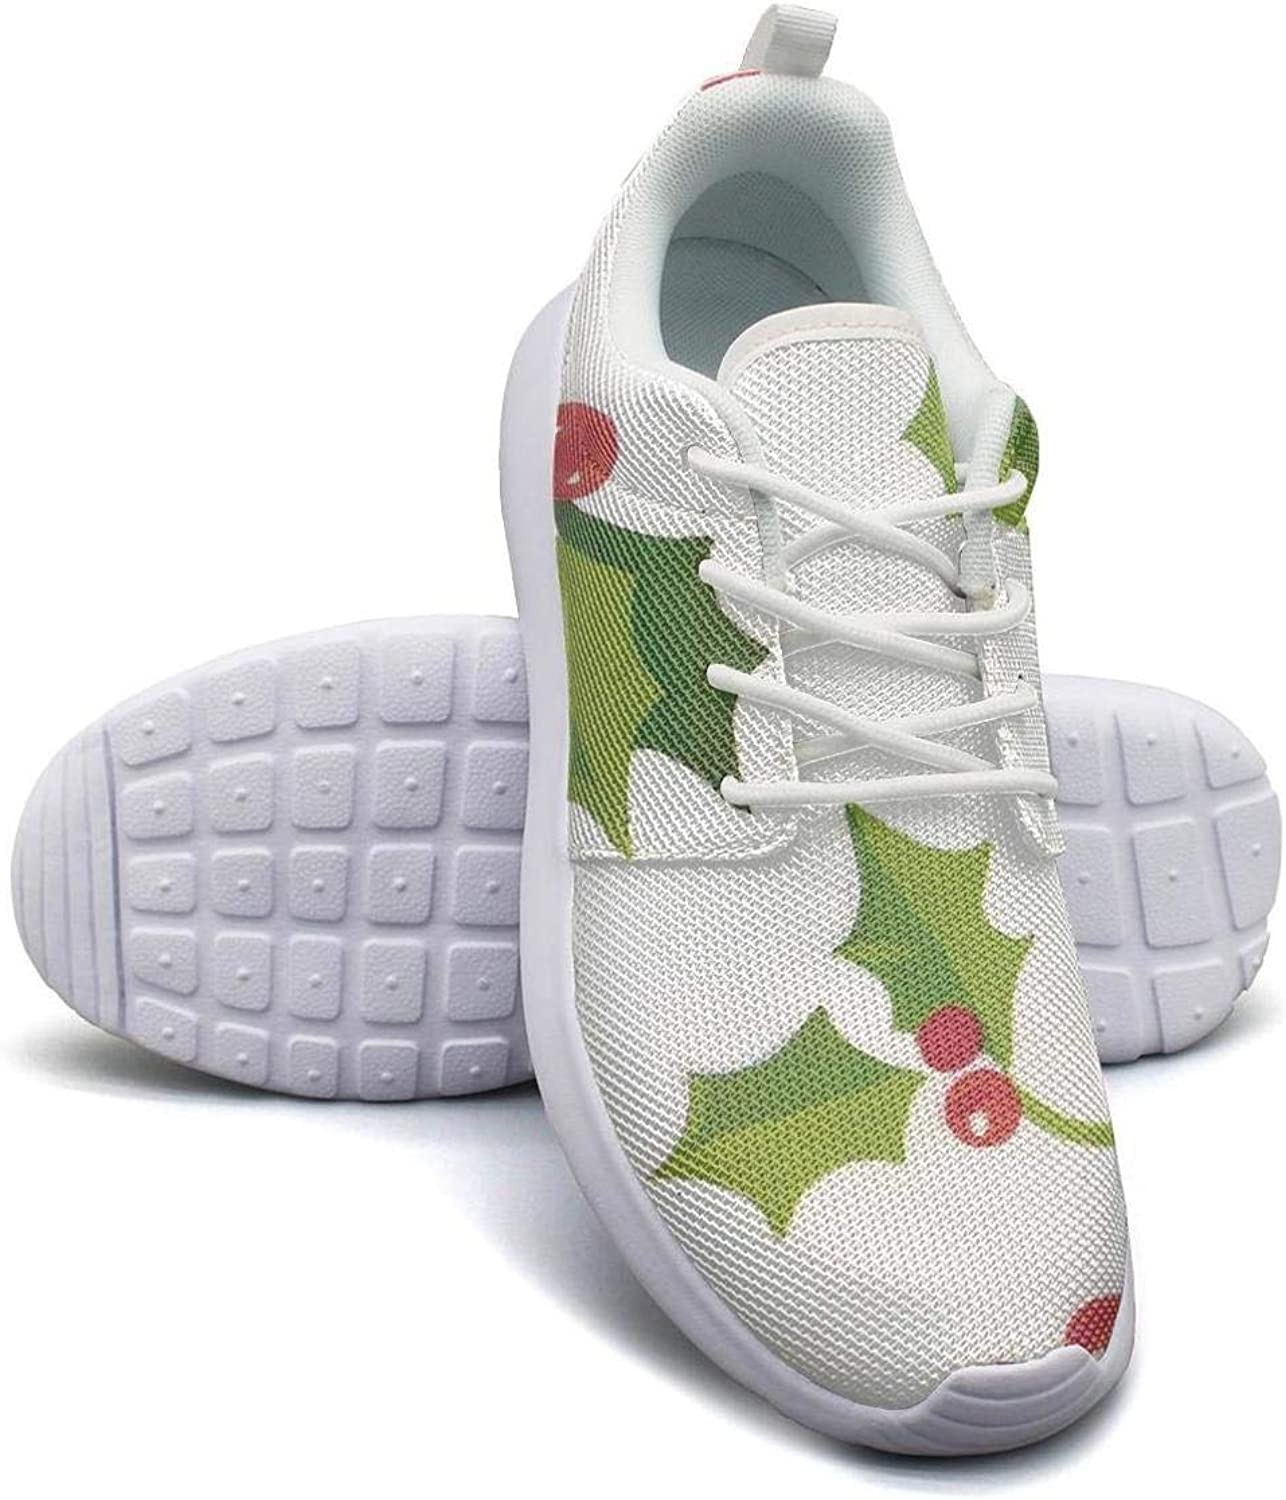 Gjsonmv Christmas Holly Leaves Berries mesh Lightweight shoes for Women Fashion Sports Trail Running Sneakers shoes